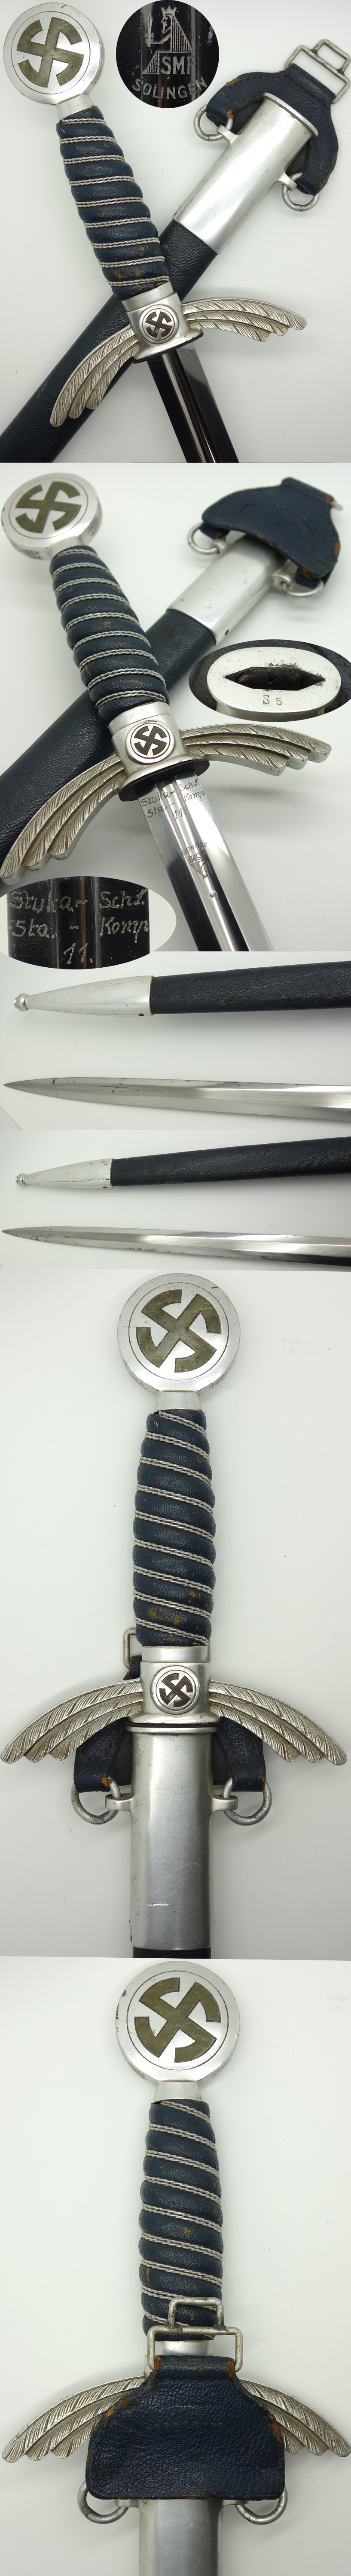 Stuka School owned SMF Luftwaffe Sword